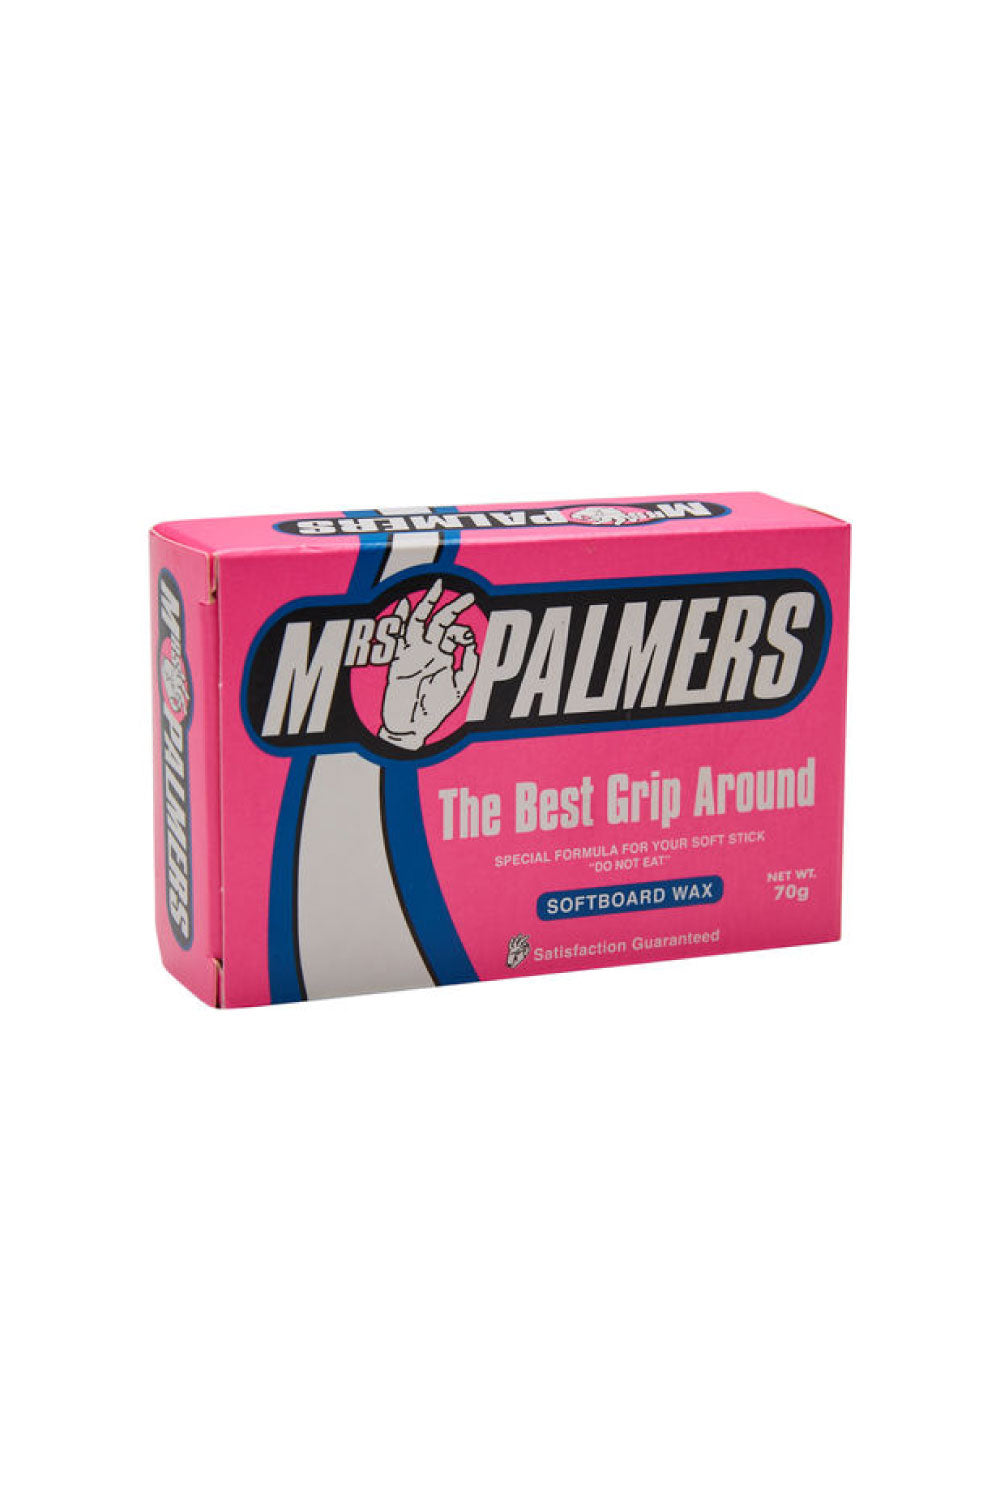 Soft Board Mrs Palmers Wax